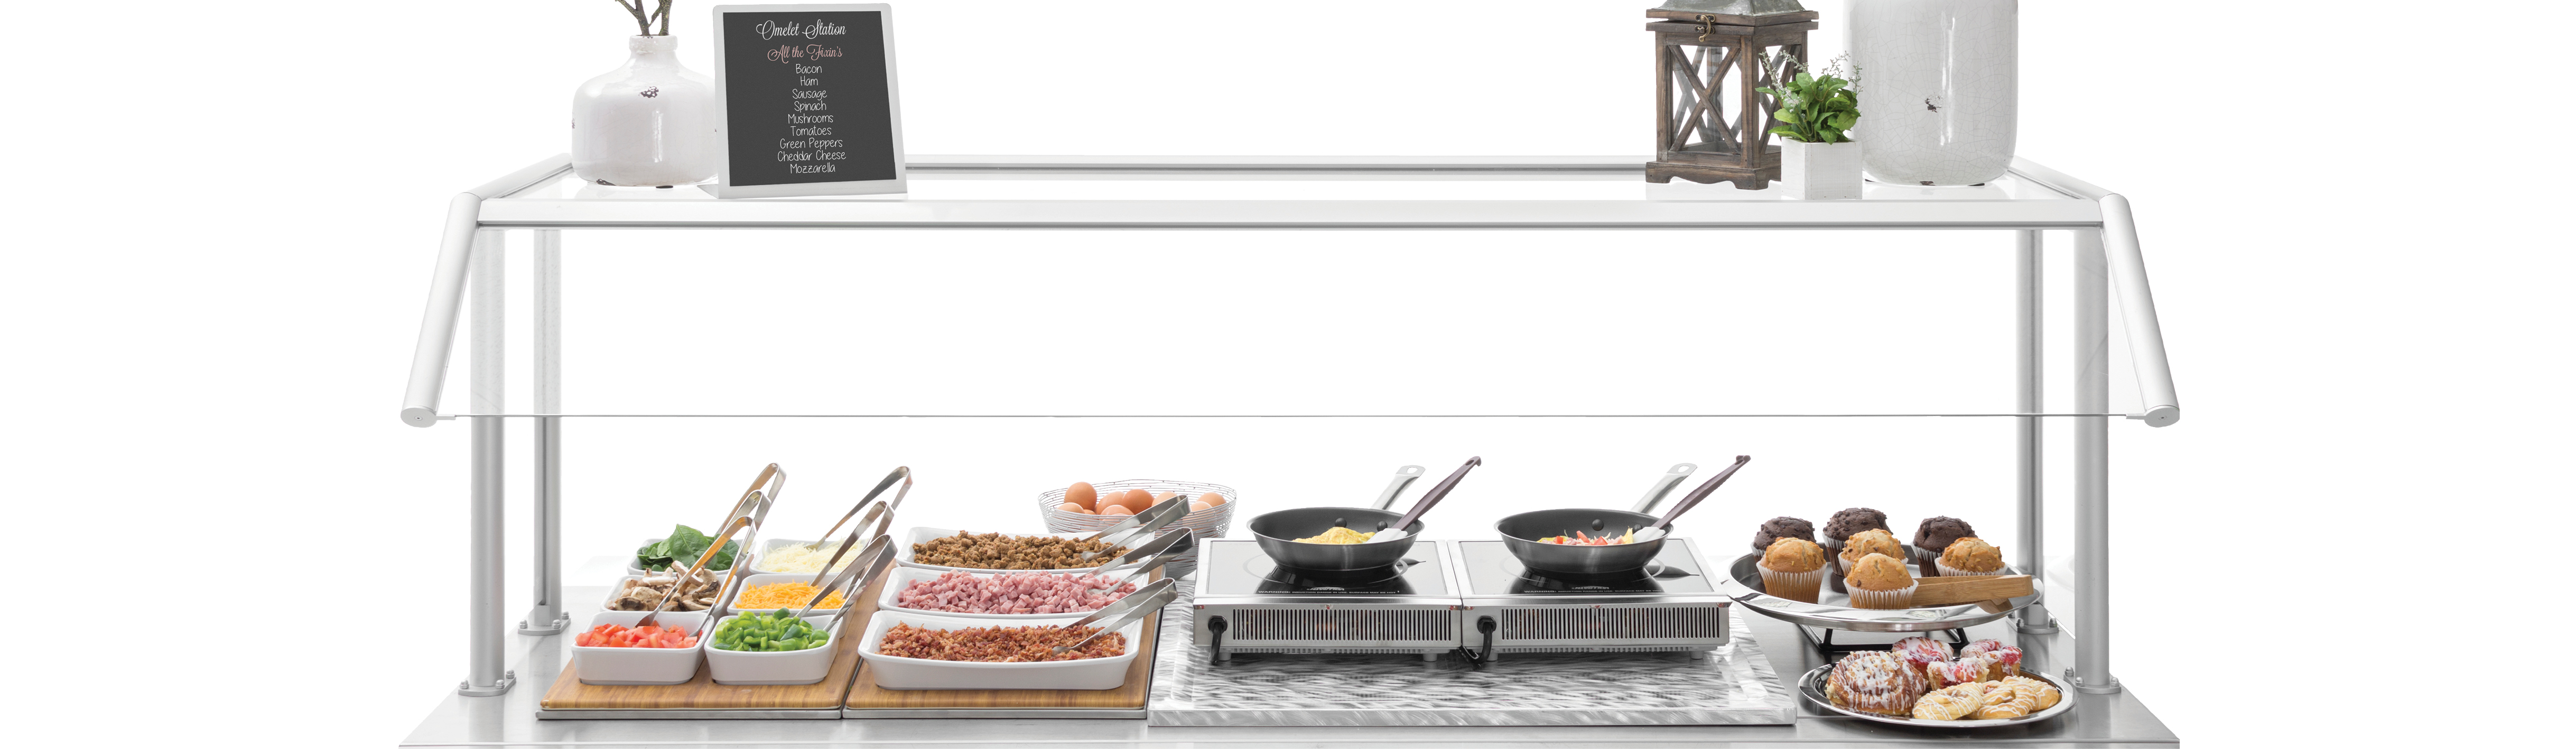 Stainless Hot Food Display